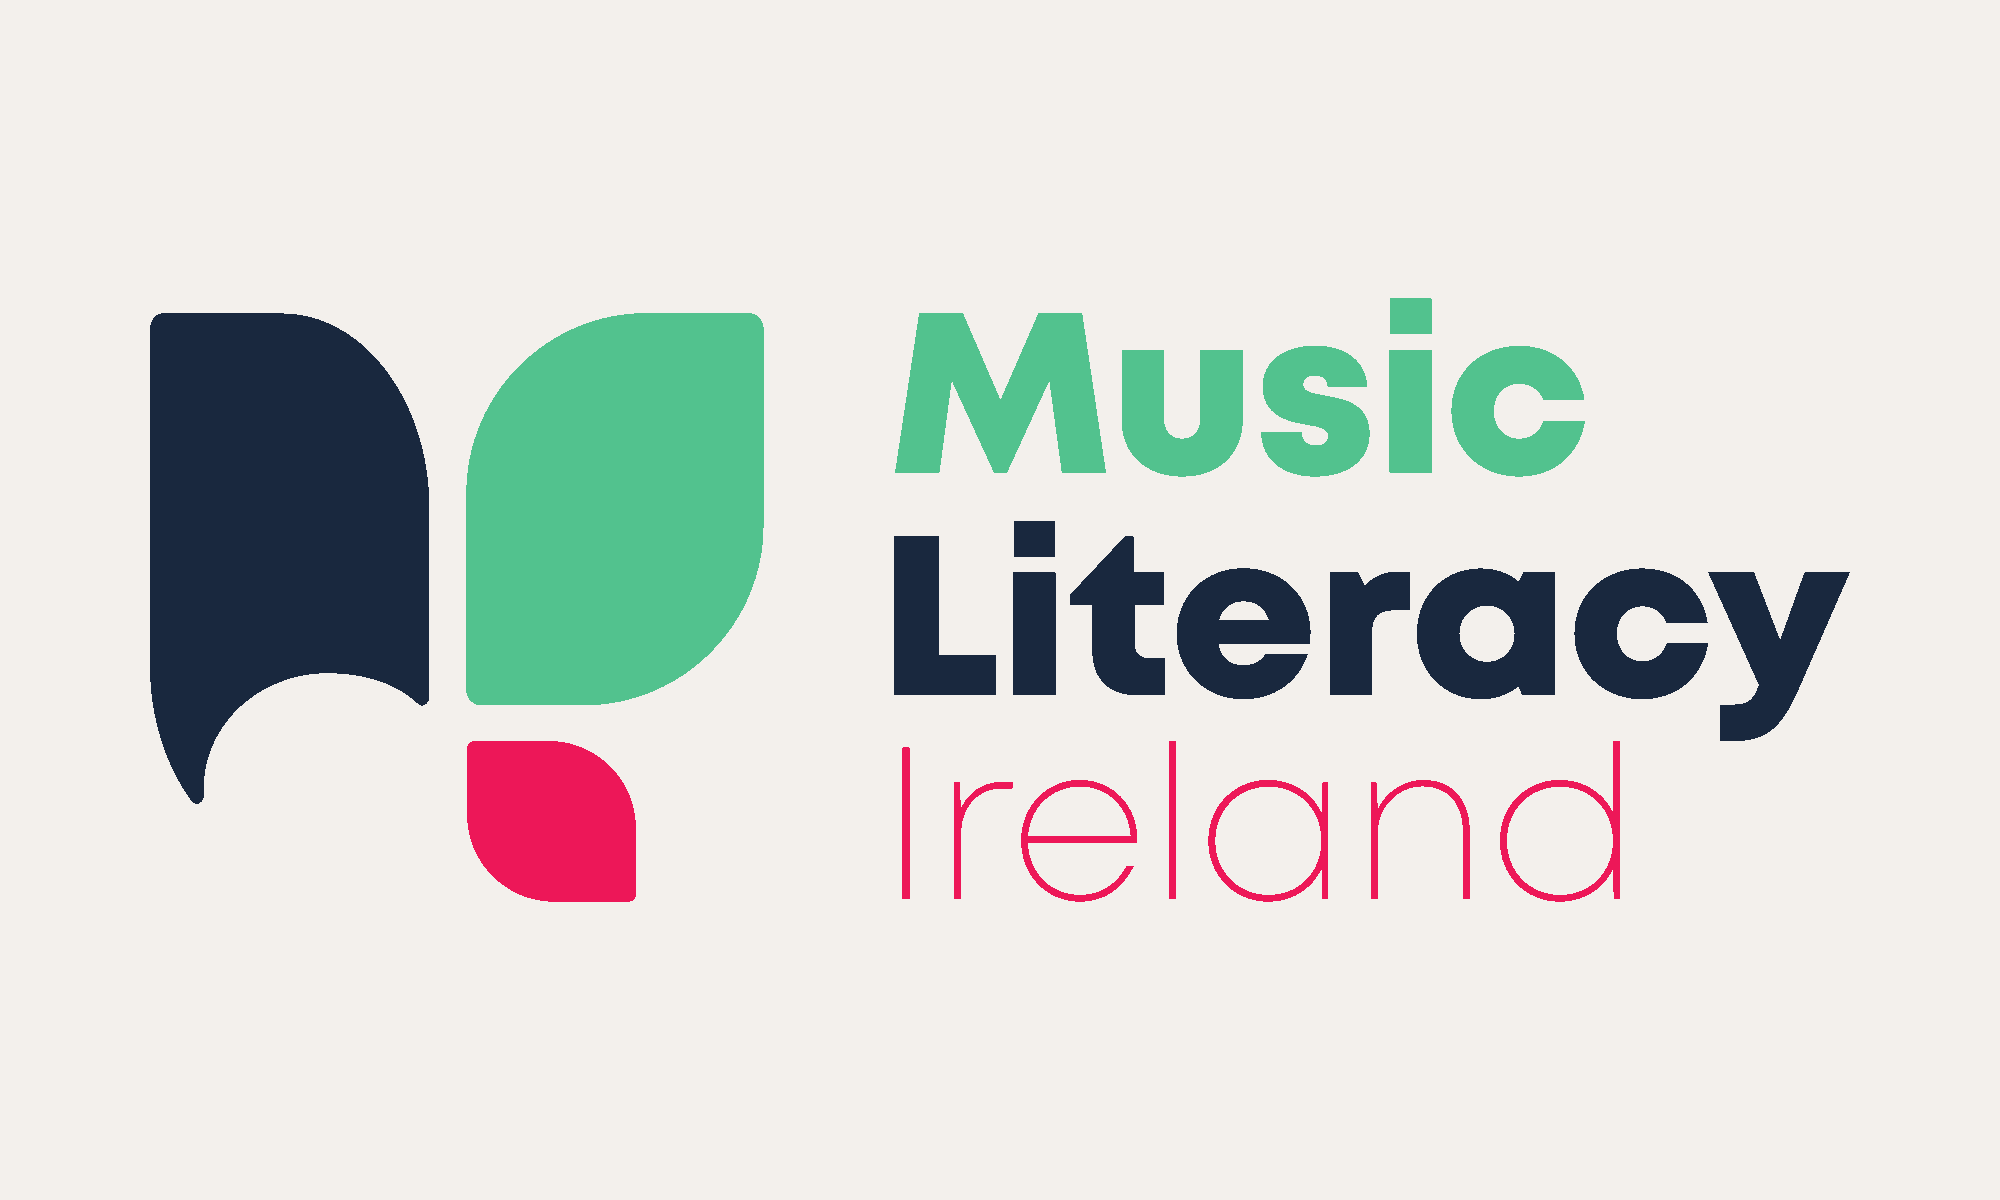 Music Literacy Ireland